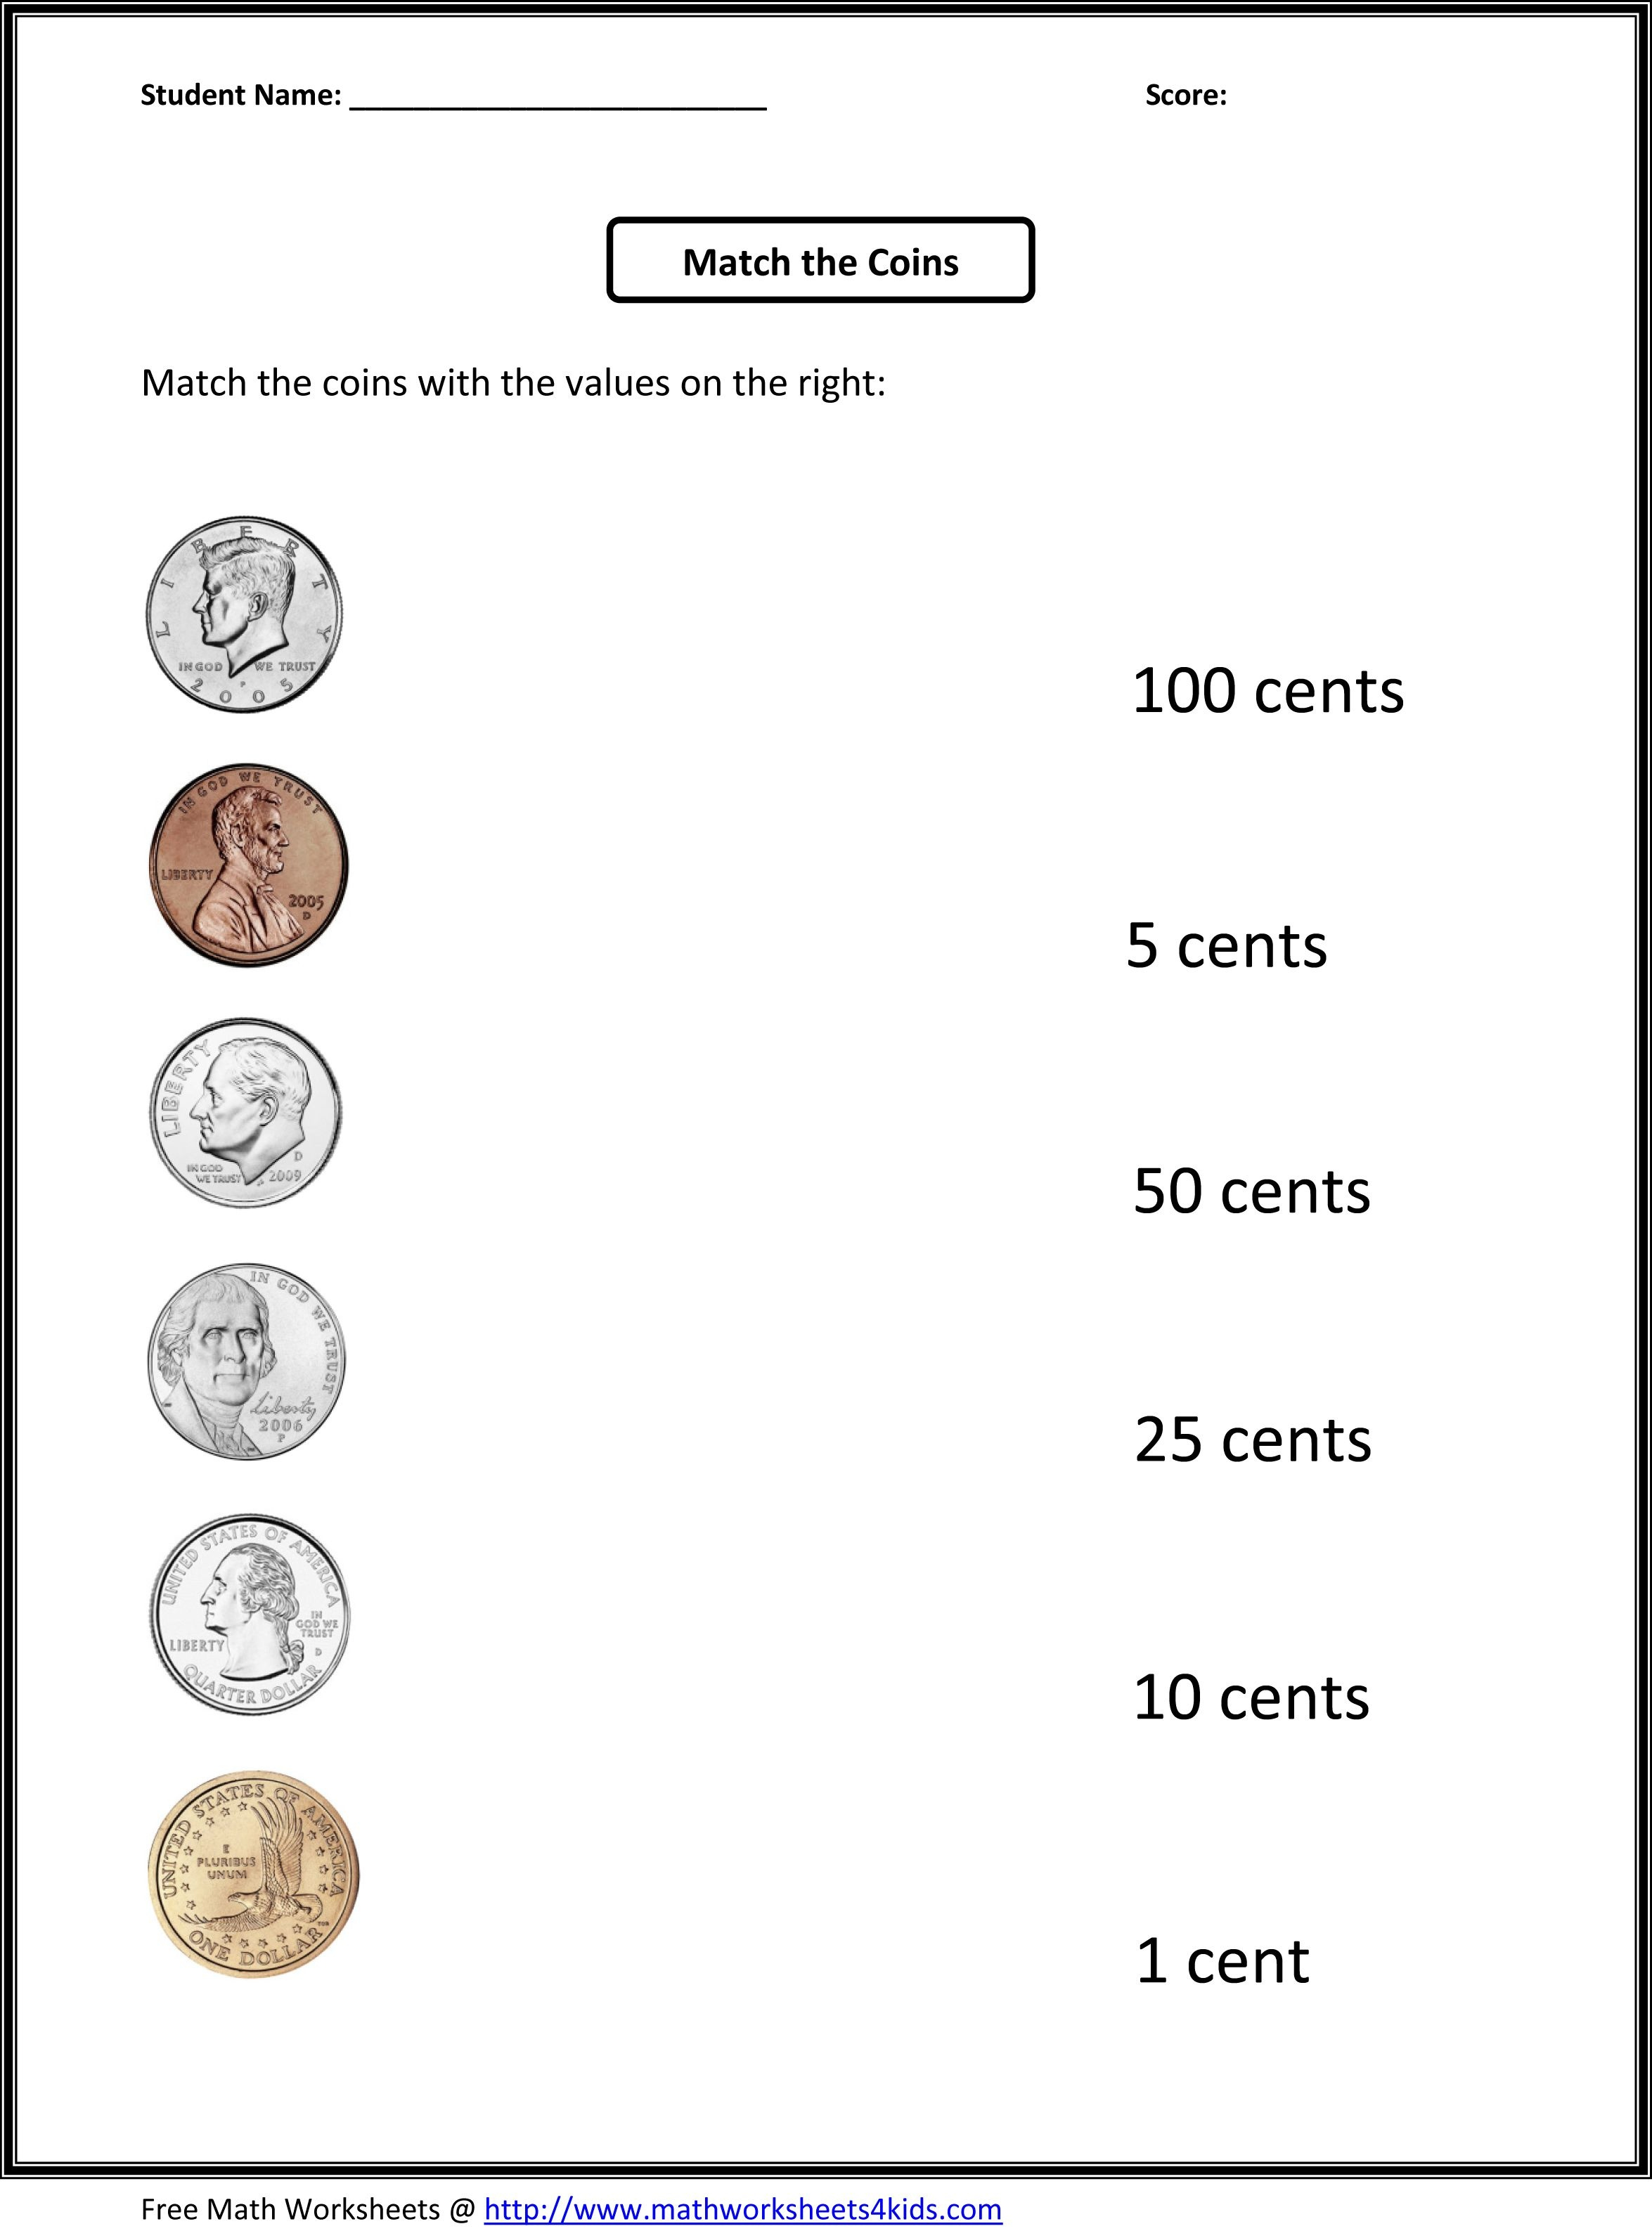 Free 1St Grade Worksheets | Match The Coins And Its Values - Free Printable Money Worksheets For Kindergarten